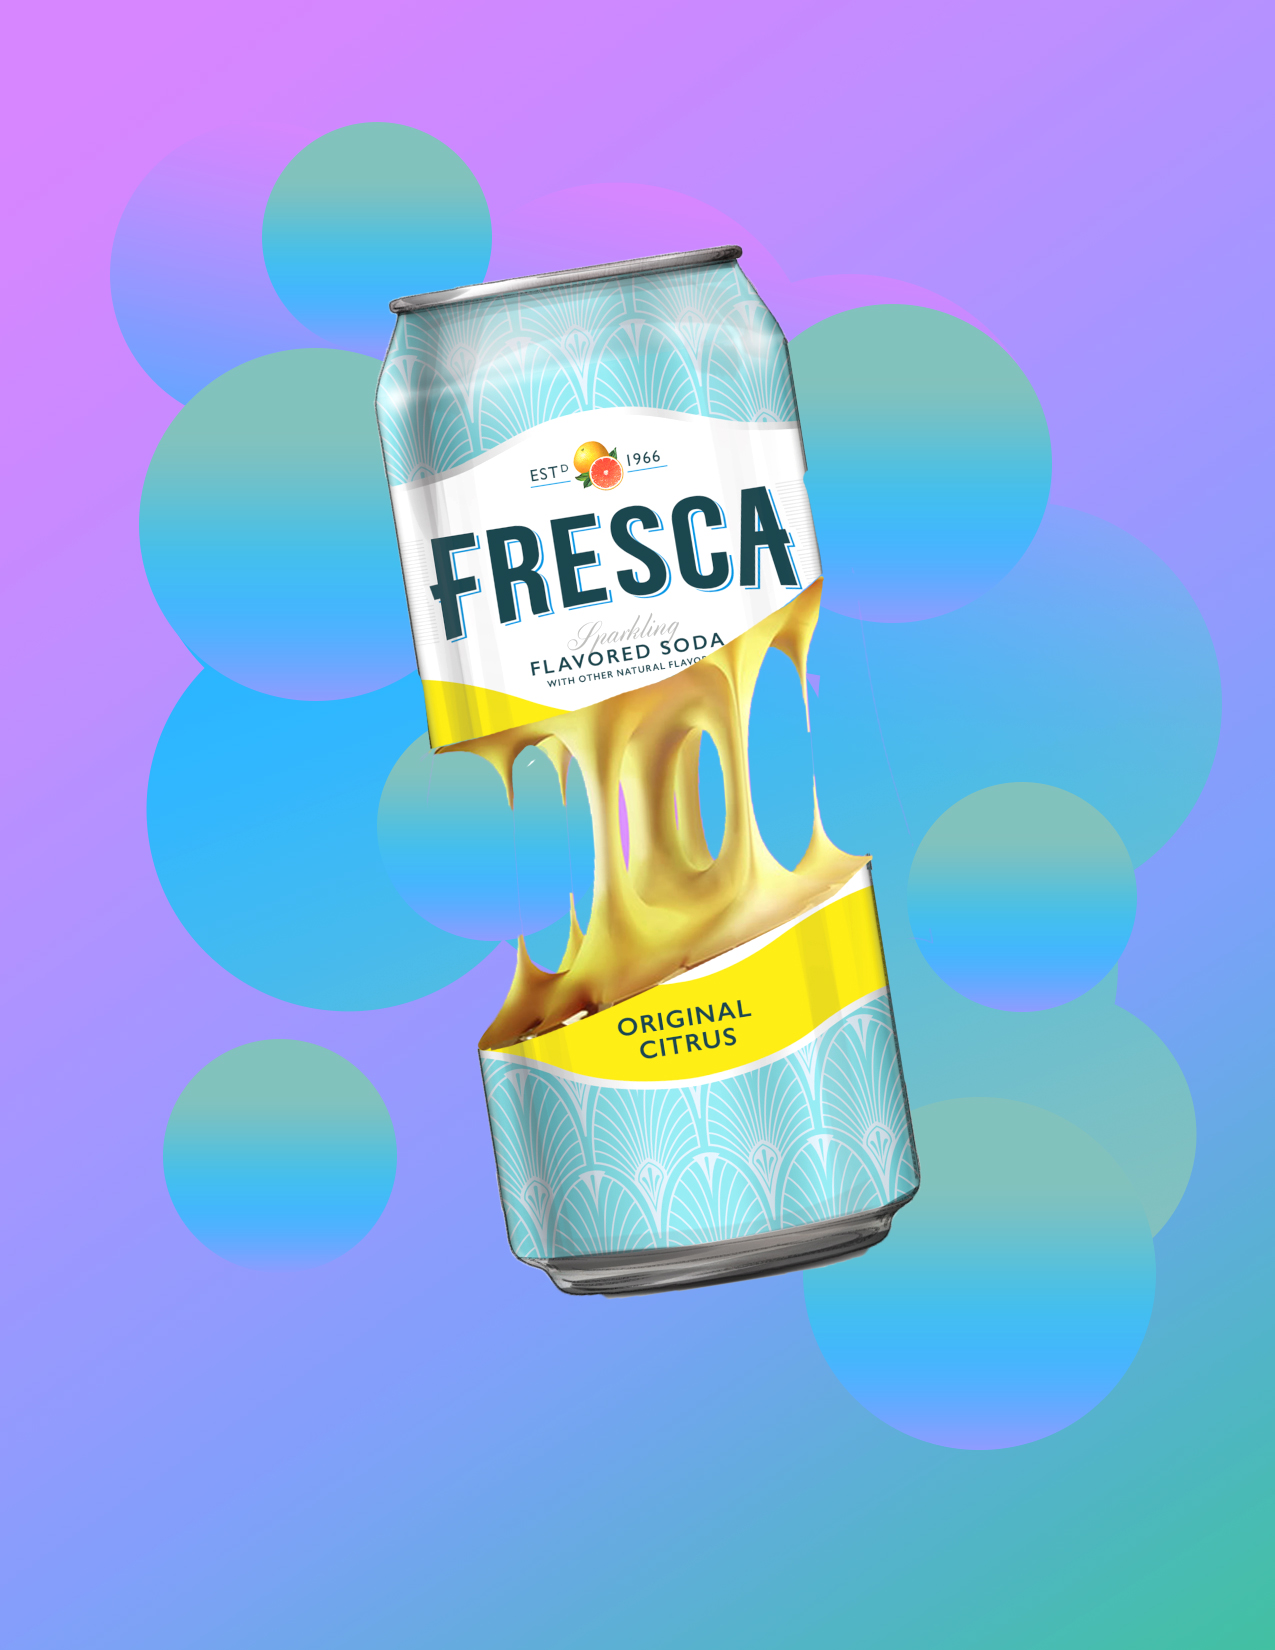 CC_Fresca_Exploration_7.jpg